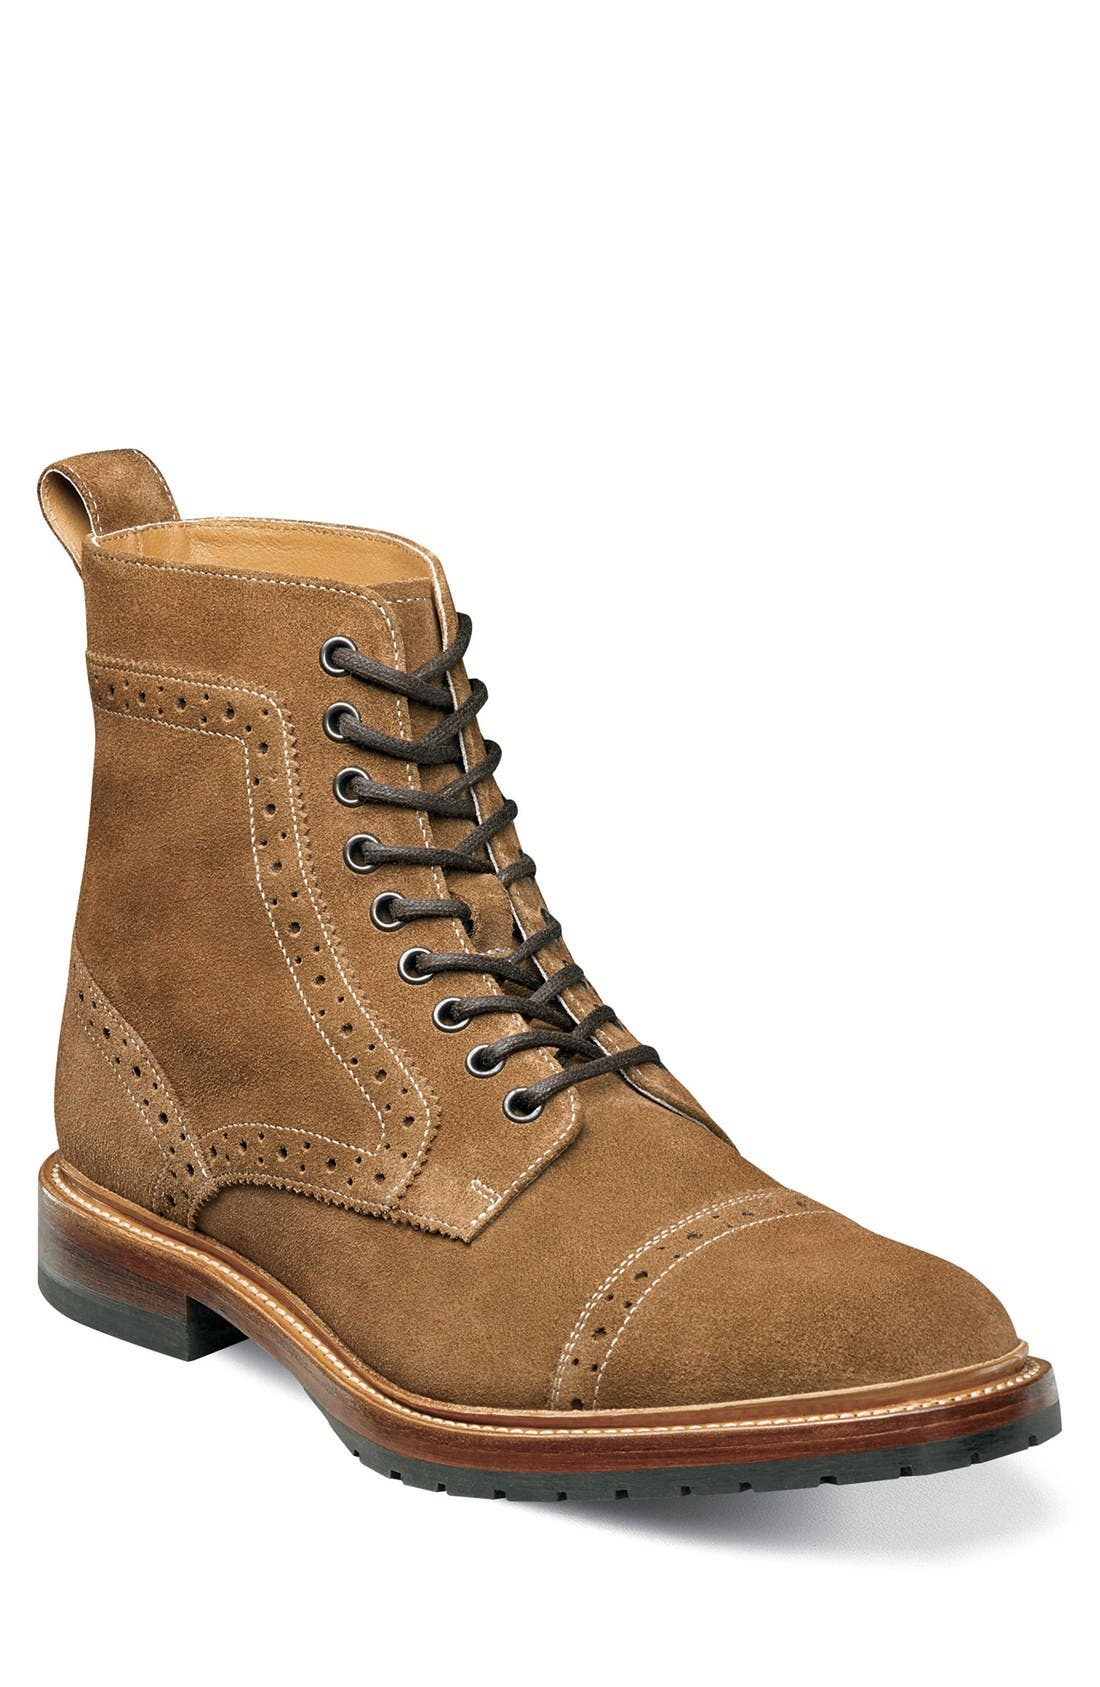 Madison II Cap Toe Lace Boot,                             Main thumbnail 1, color,                             Tan Suede